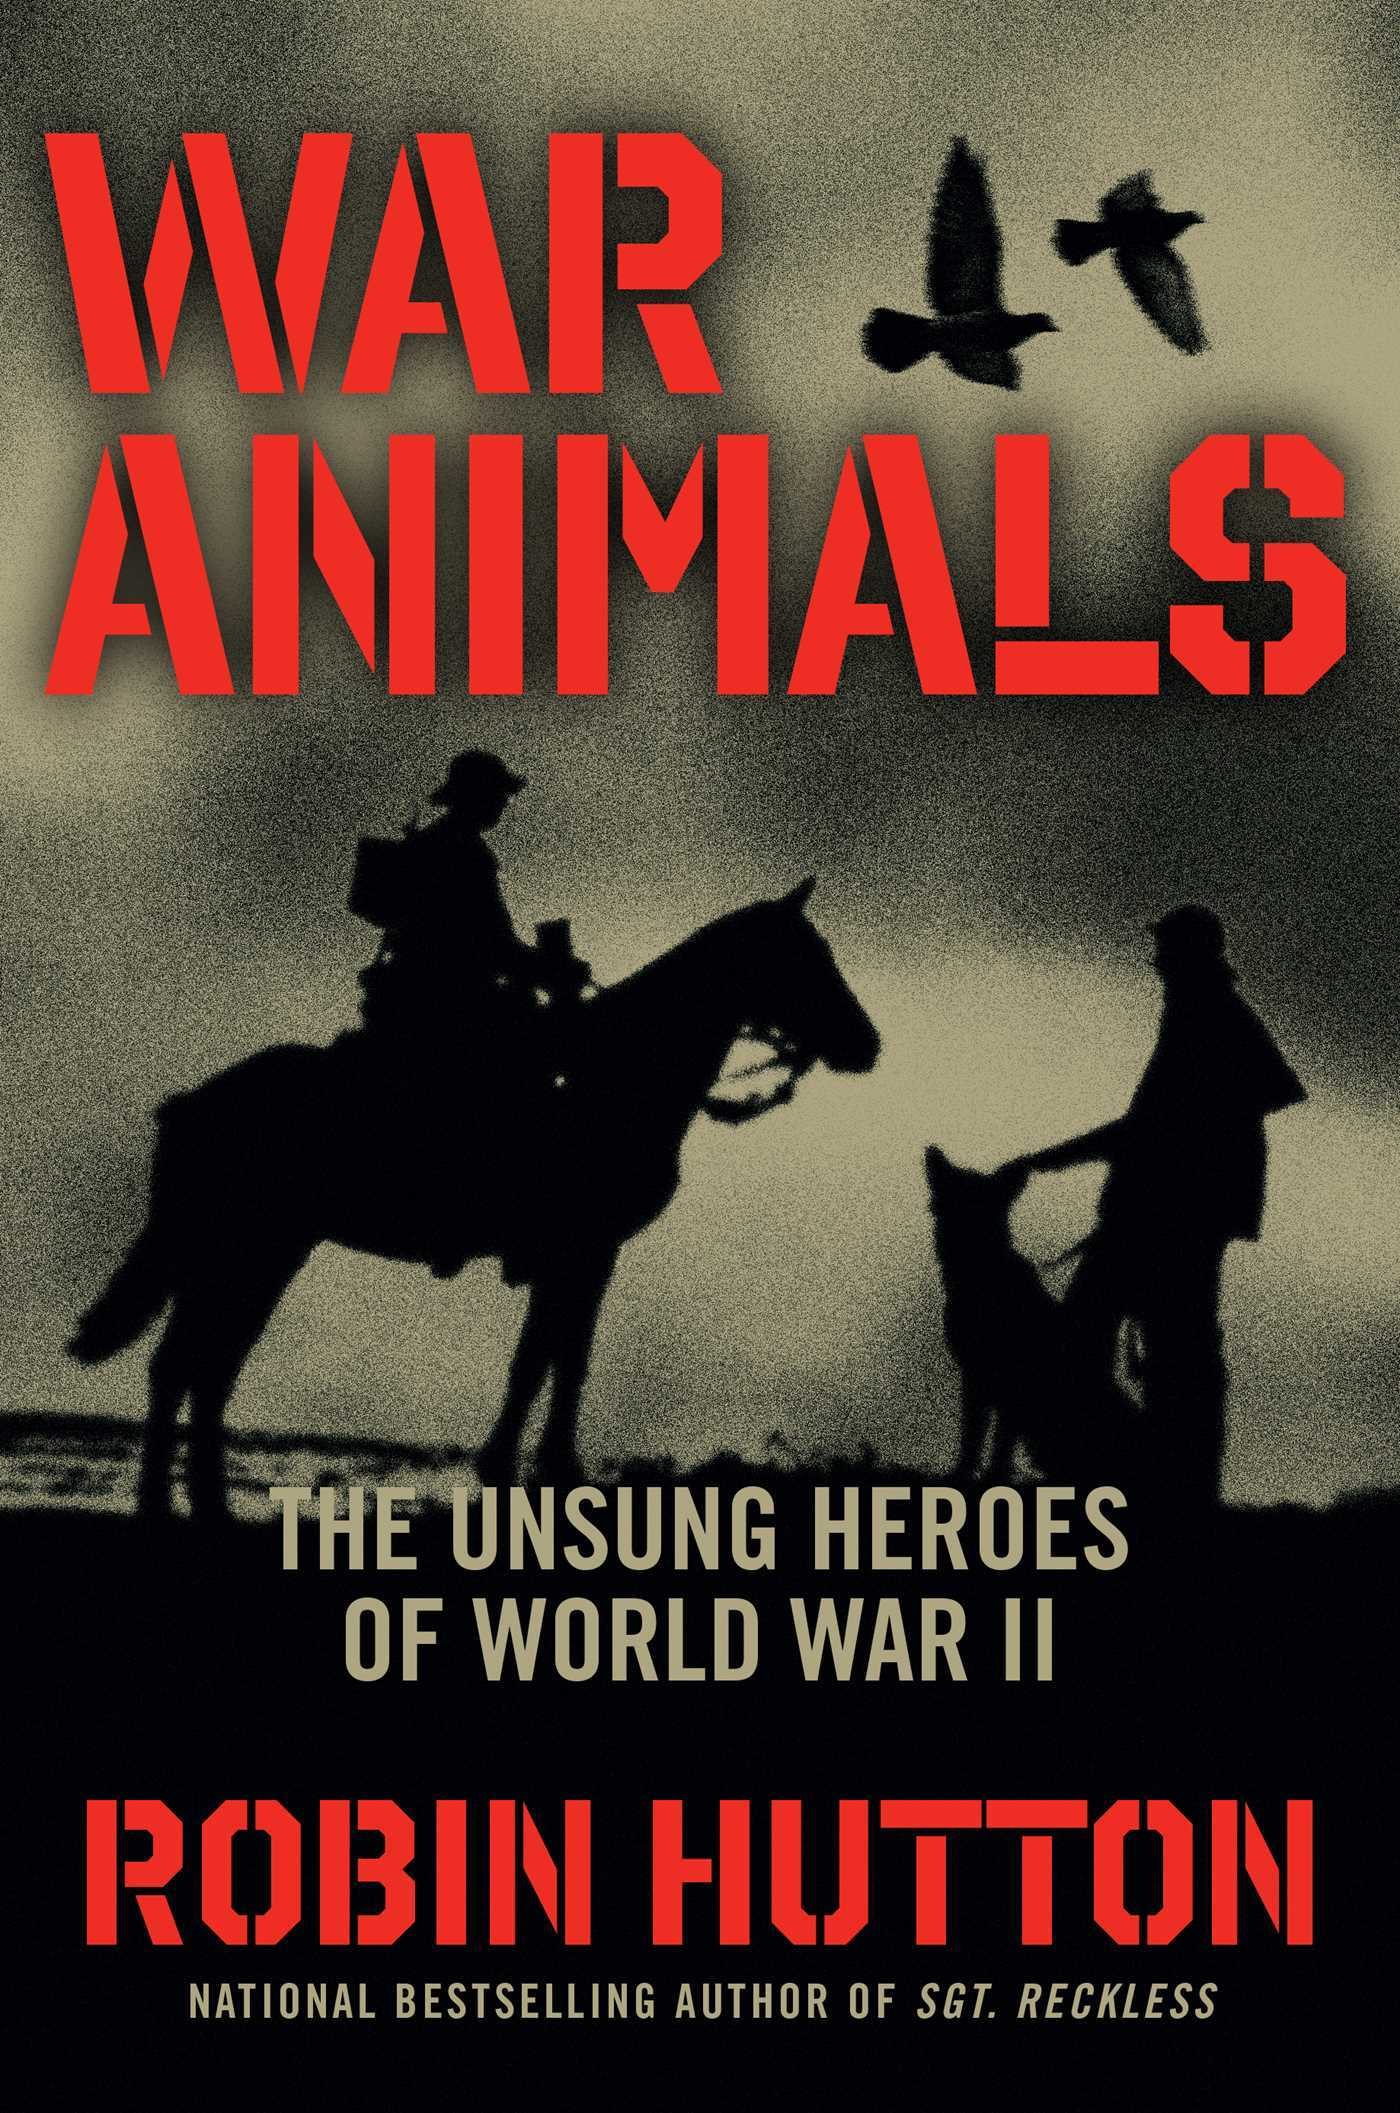 War Animals: The Unsung Heroes of World War II